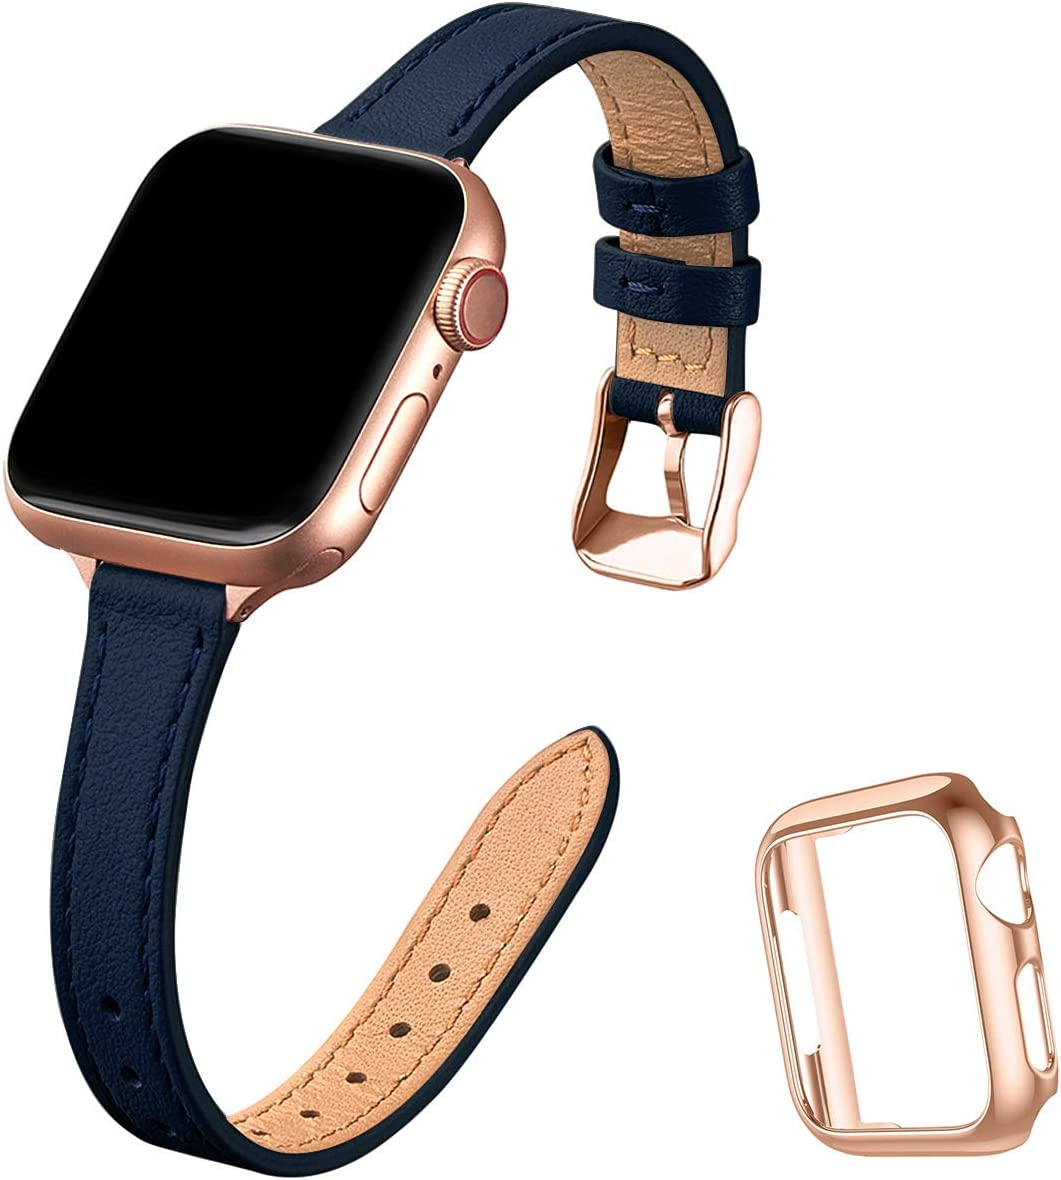 STIROLL Slim Leather Bands Compatible with Apple Watch Band 38mm 40mm 42mm 44mm, Top Grain Leather Watch Thin Wristband for iWatch SE Series 6/5/4/3/2/1 (Black with Black, 38mm/40mm)